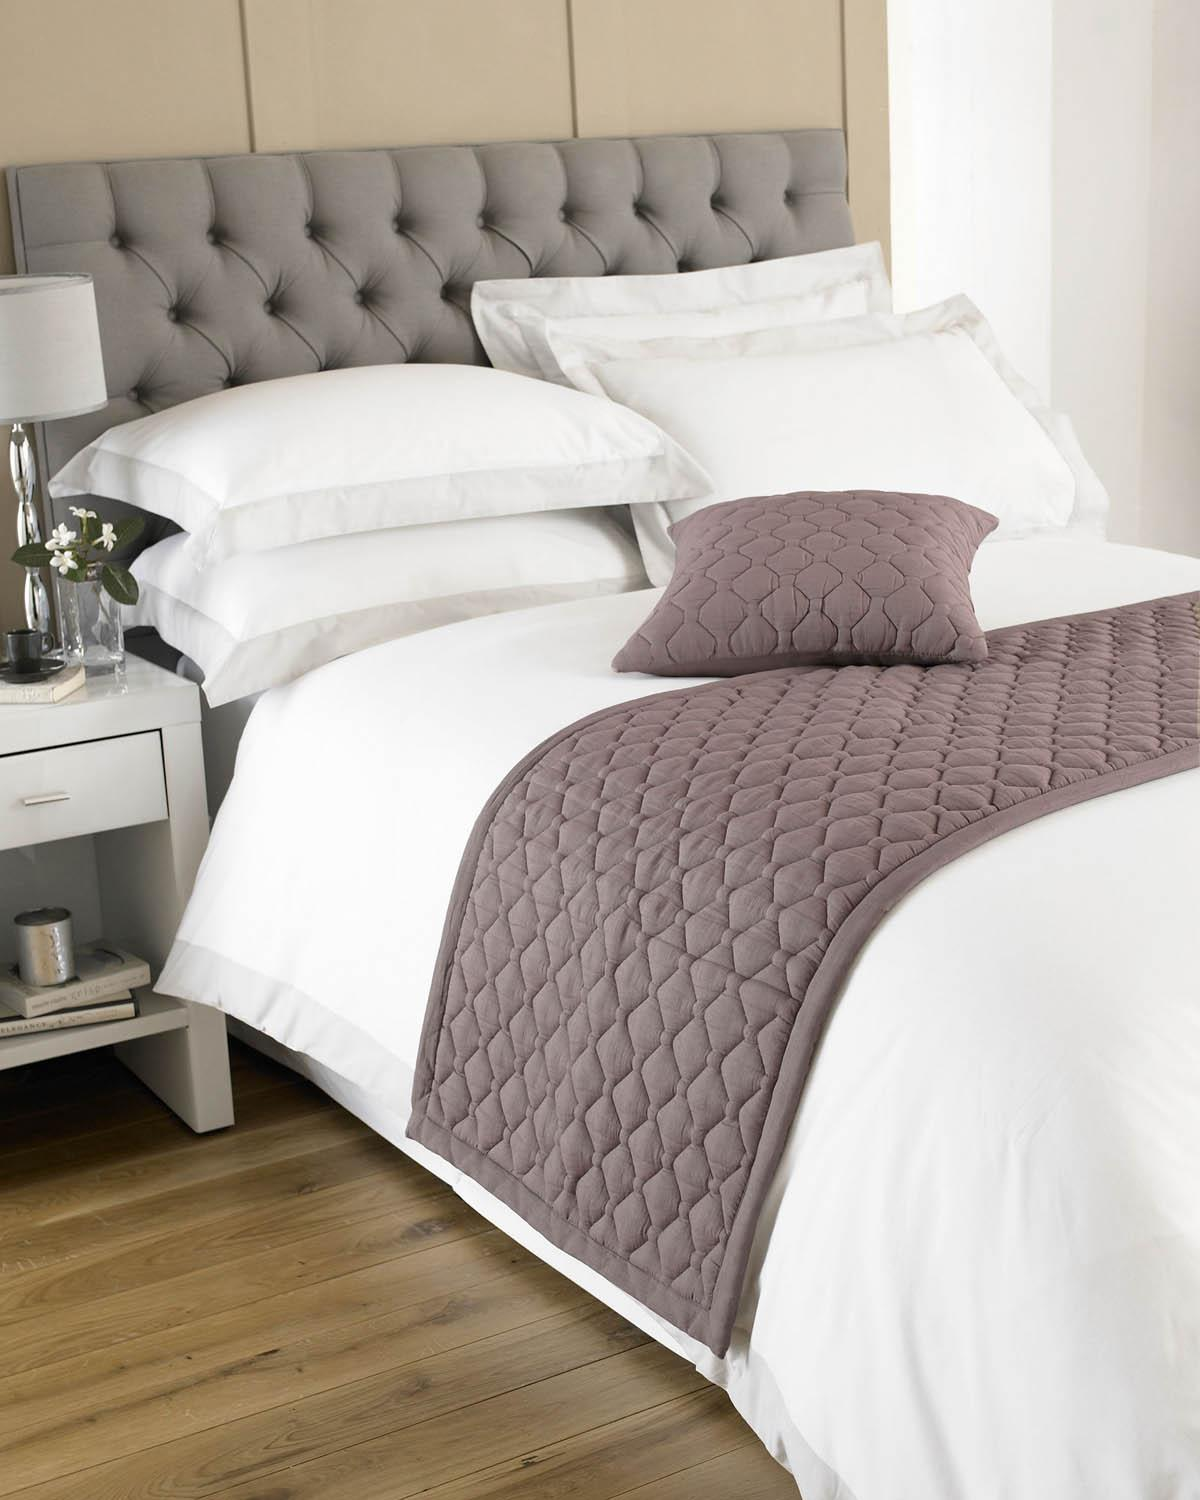 Shop online at Linens Limited for Bed Runners, Bed Linen, Duvets, Pillows, Bath Towels, Home Furnishings and more. FREE DELIVERY available. JavaScript seems to be disabled in your entefile.gqs: K.